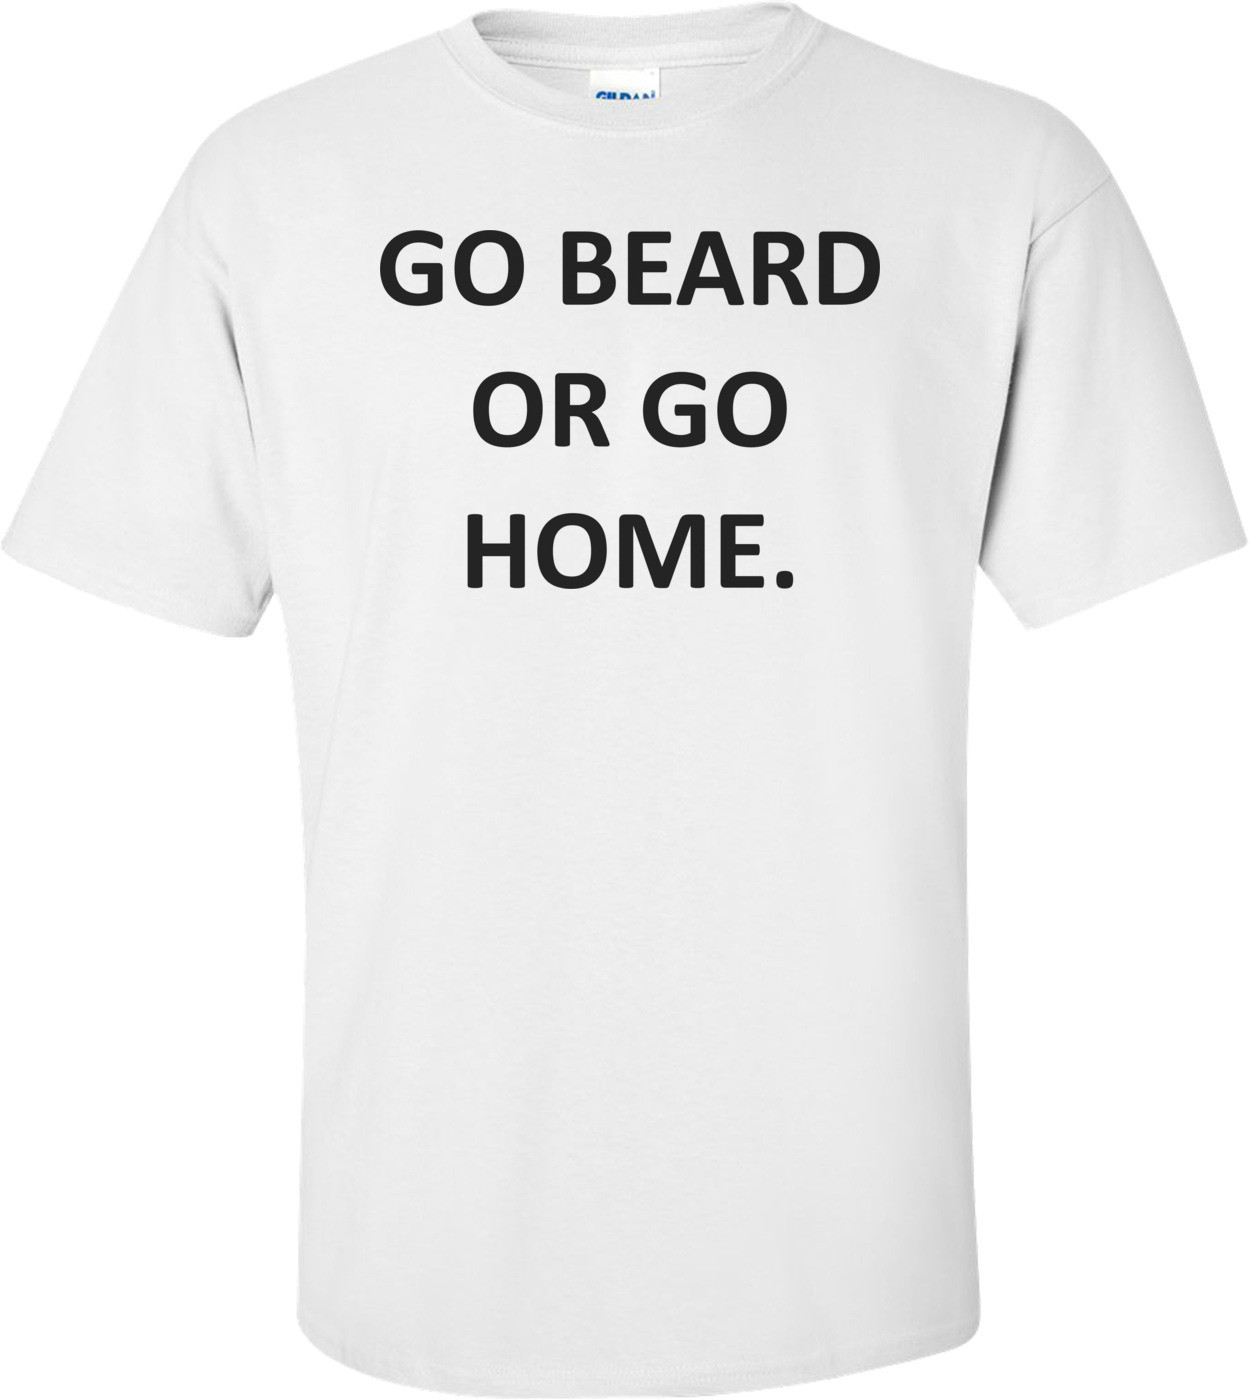 GO BEARD OR GO HOME. Shirt